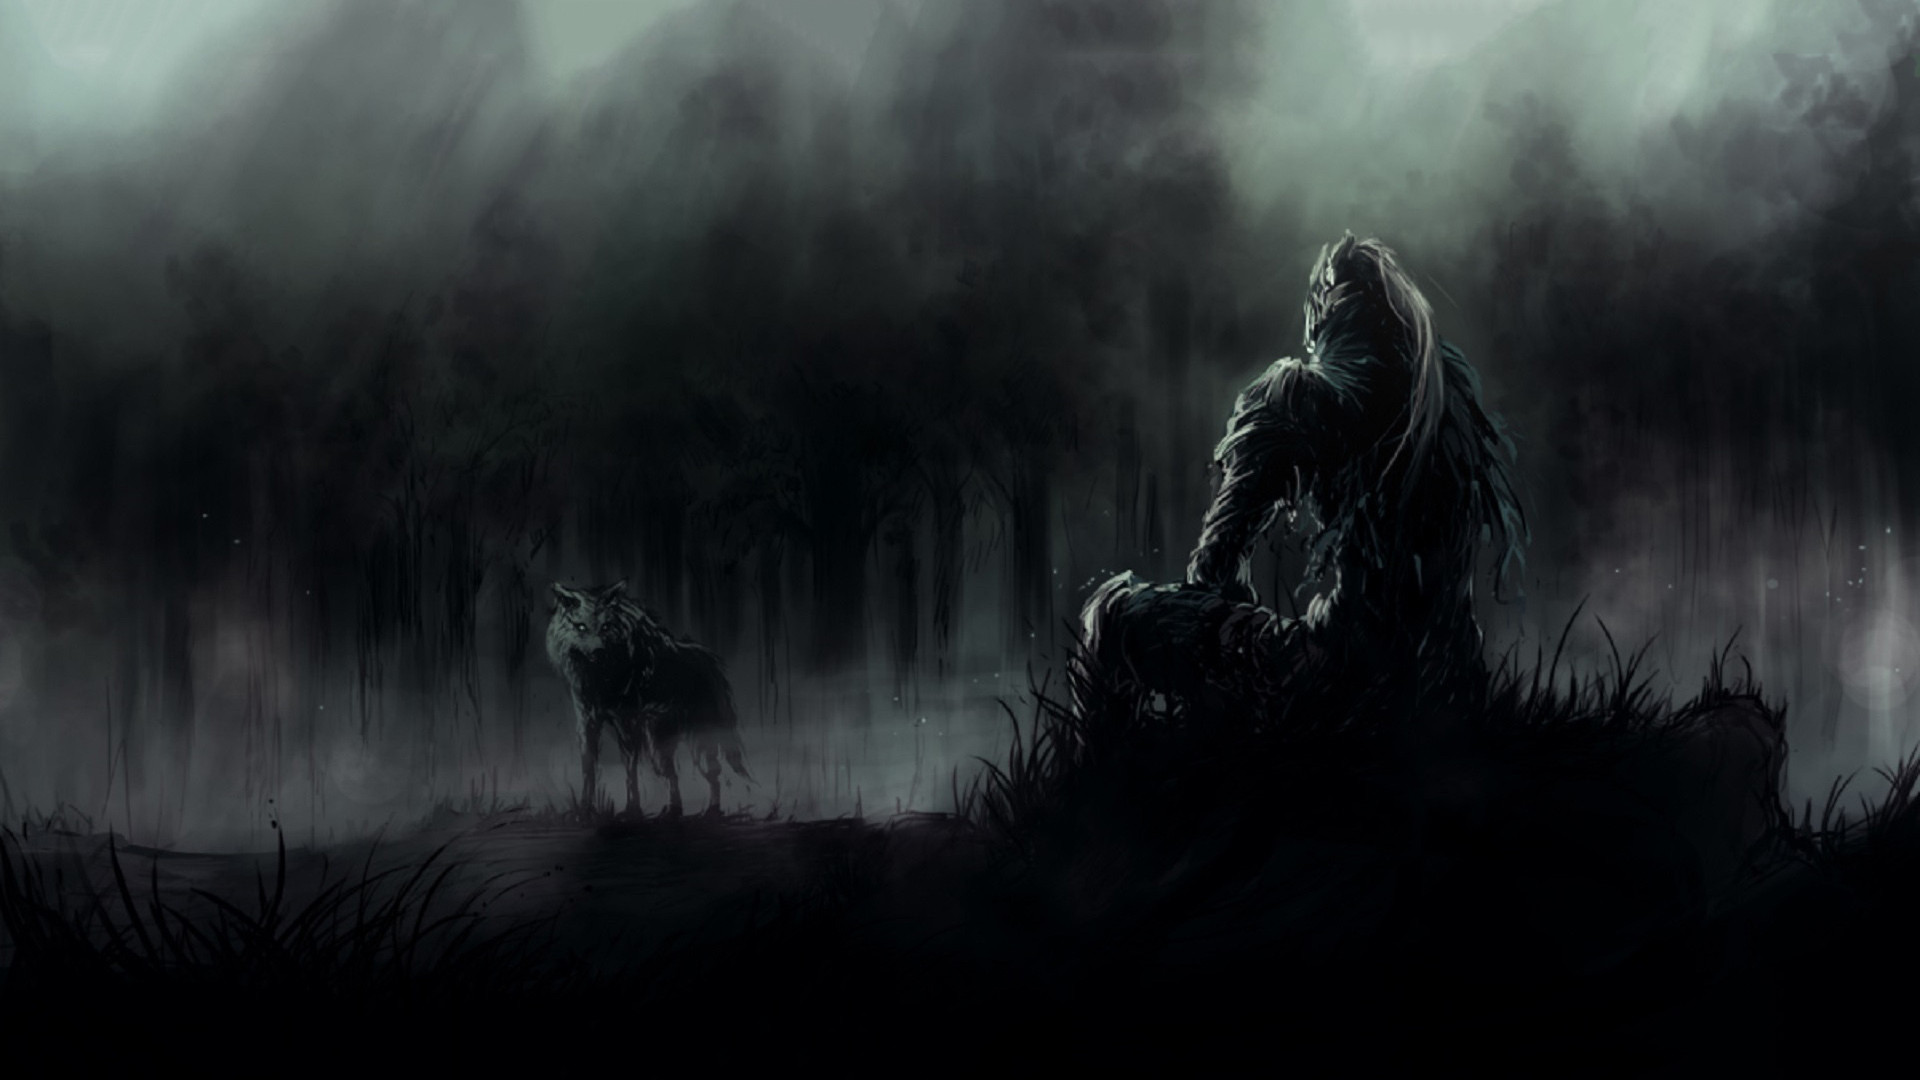 2560x1600 Free Wallpapers Fantasy Mobile Wallpaper Evil Display Demon Dark Life Horror Wolf Stock Photos Occult HD